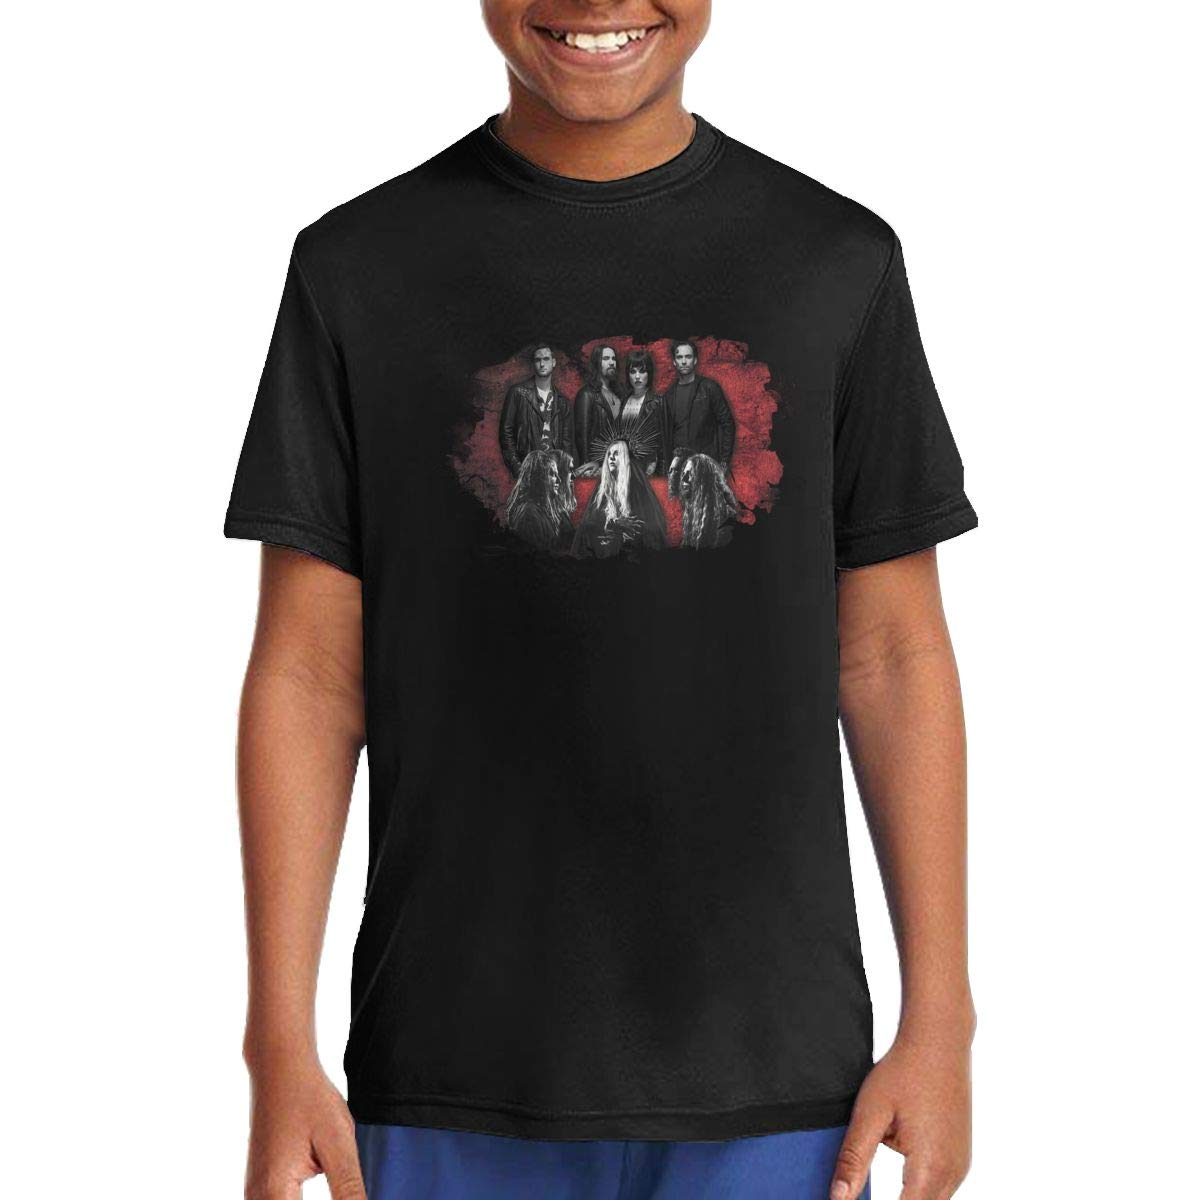 Halestorm Music//Rock//Singer Cotton Round Neck Short Sleeve T Shirt for Teen Boys and Girls Classic Fit Black